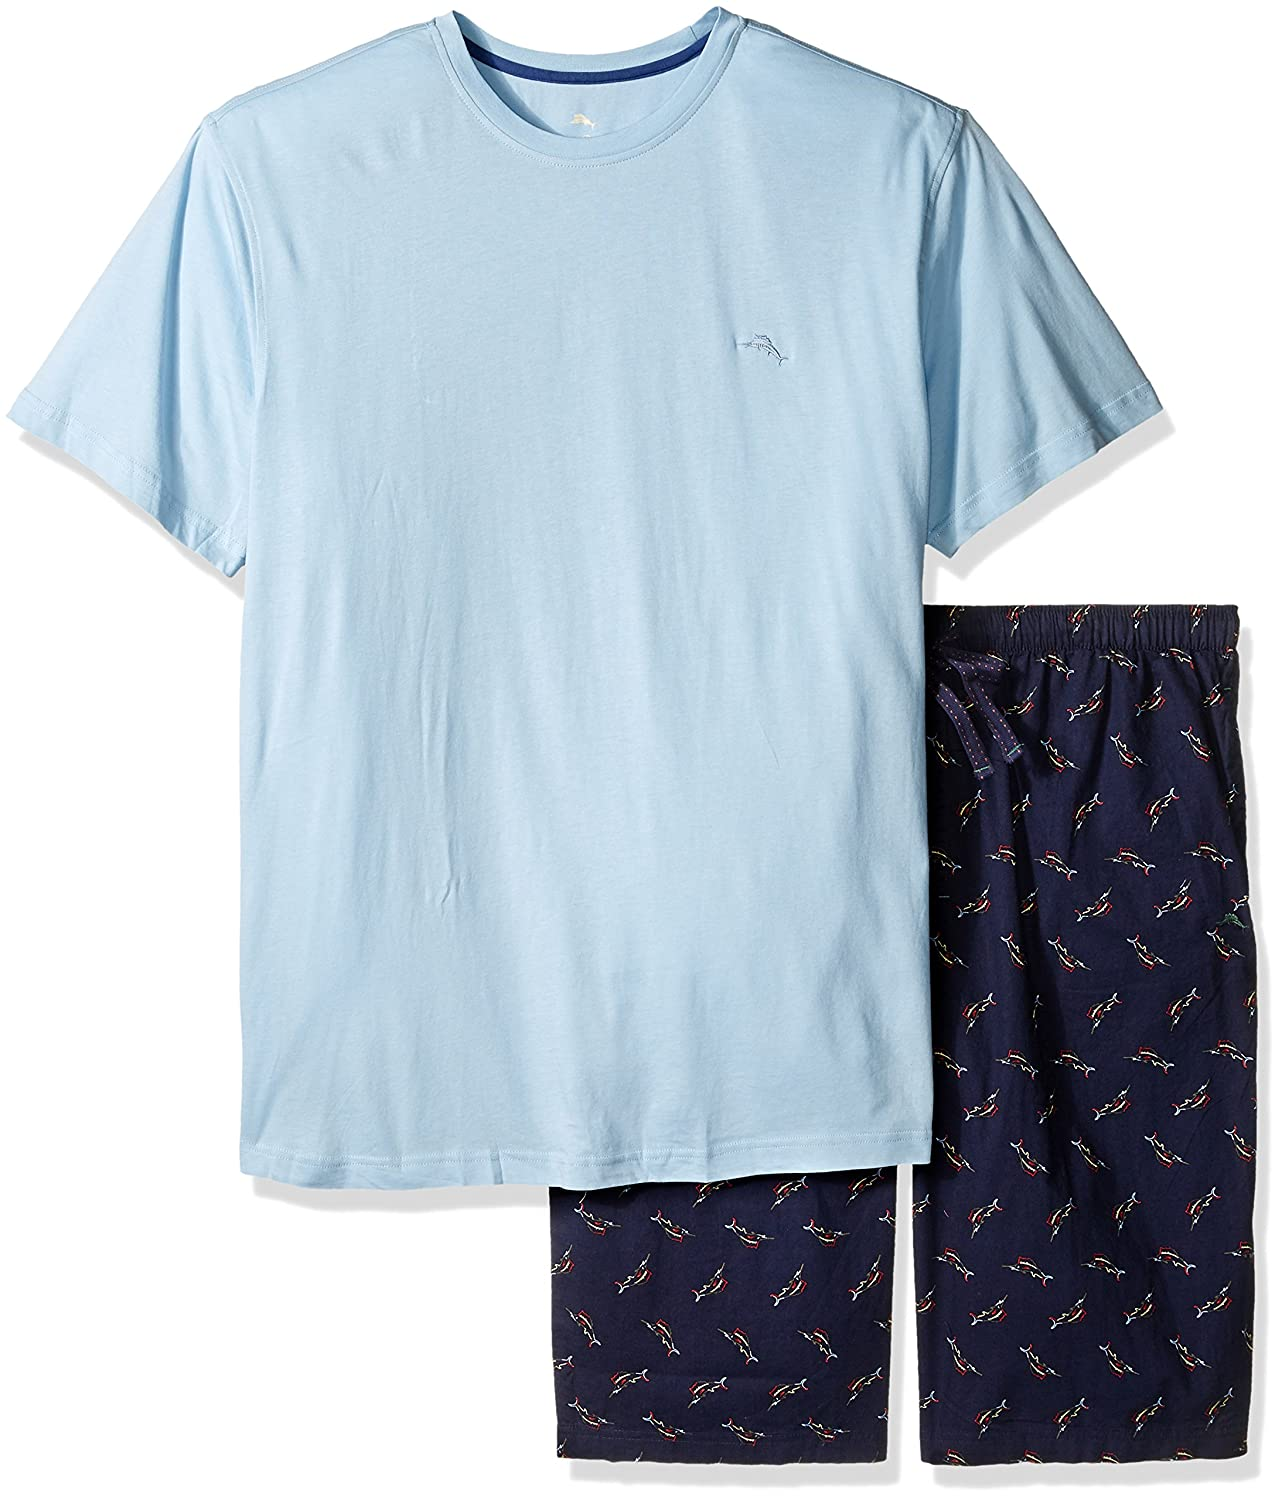 Tommy Bahama Men's Size Woven Jam Knit Tee Set-Tall Tossed Multi Marlin Large 2111201XT